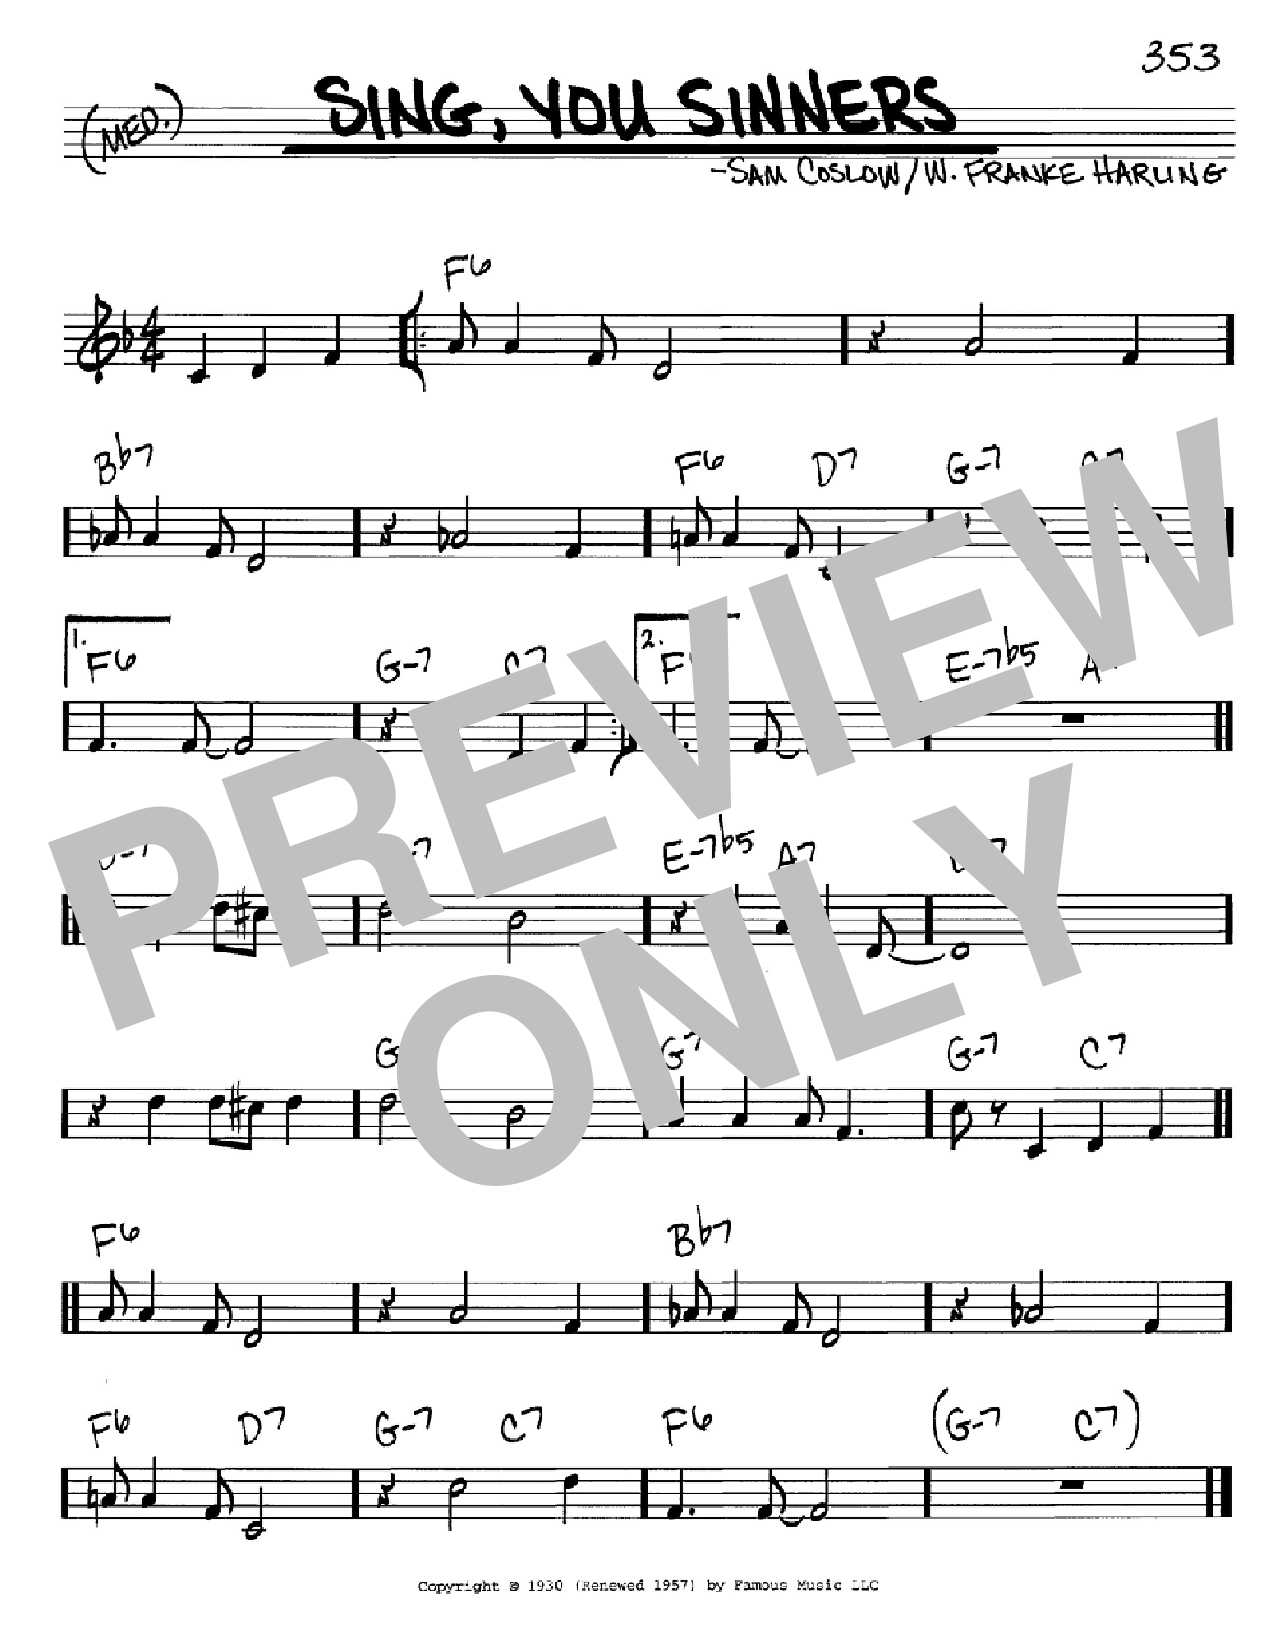 Sing, You Sinners Sheet Music